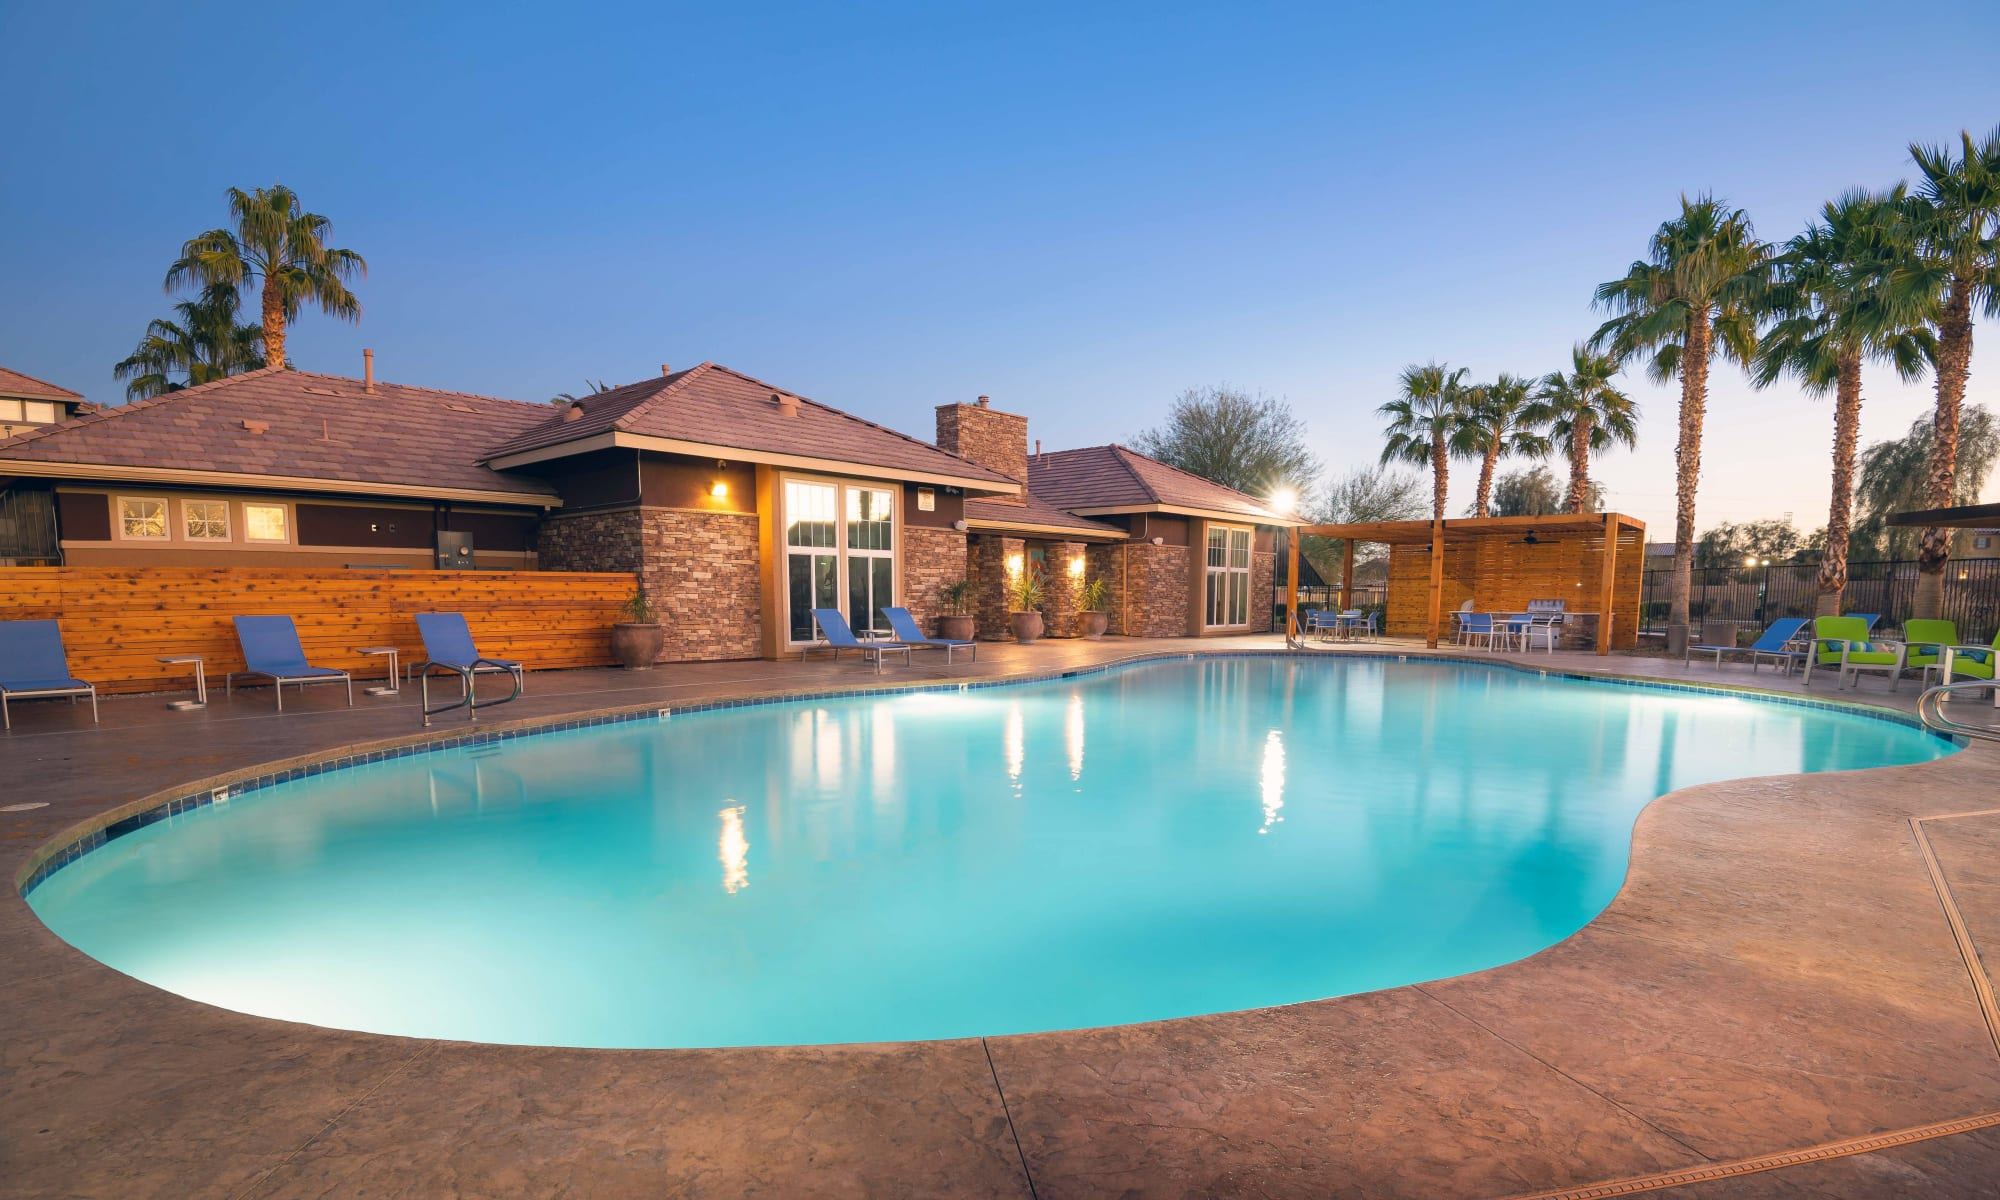 Our Apartments in North Las Vegas, Nevada offer a Swimming Pool